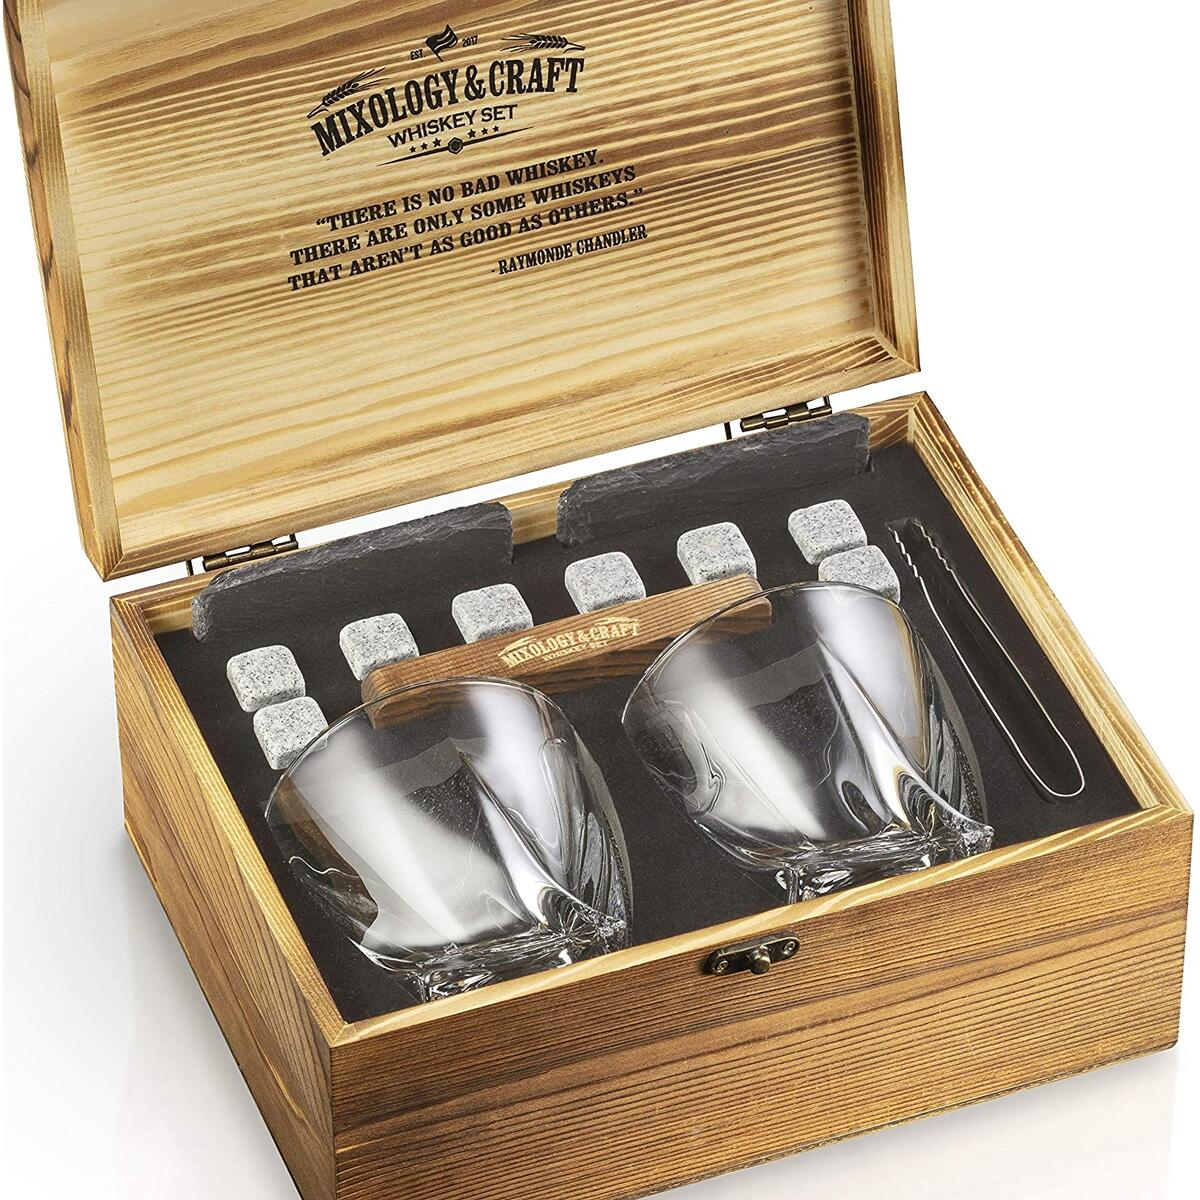 Whiskey Stones Gift Set for Men | Whiskey Glass and Stones Set with Wooden Box, 8 Granite Whiskey Rocks Chilling Stones and 10Oz Whiskey Glasses | Whiskey Lovers Gifts For Men, Dad, Husband, Boyfriend